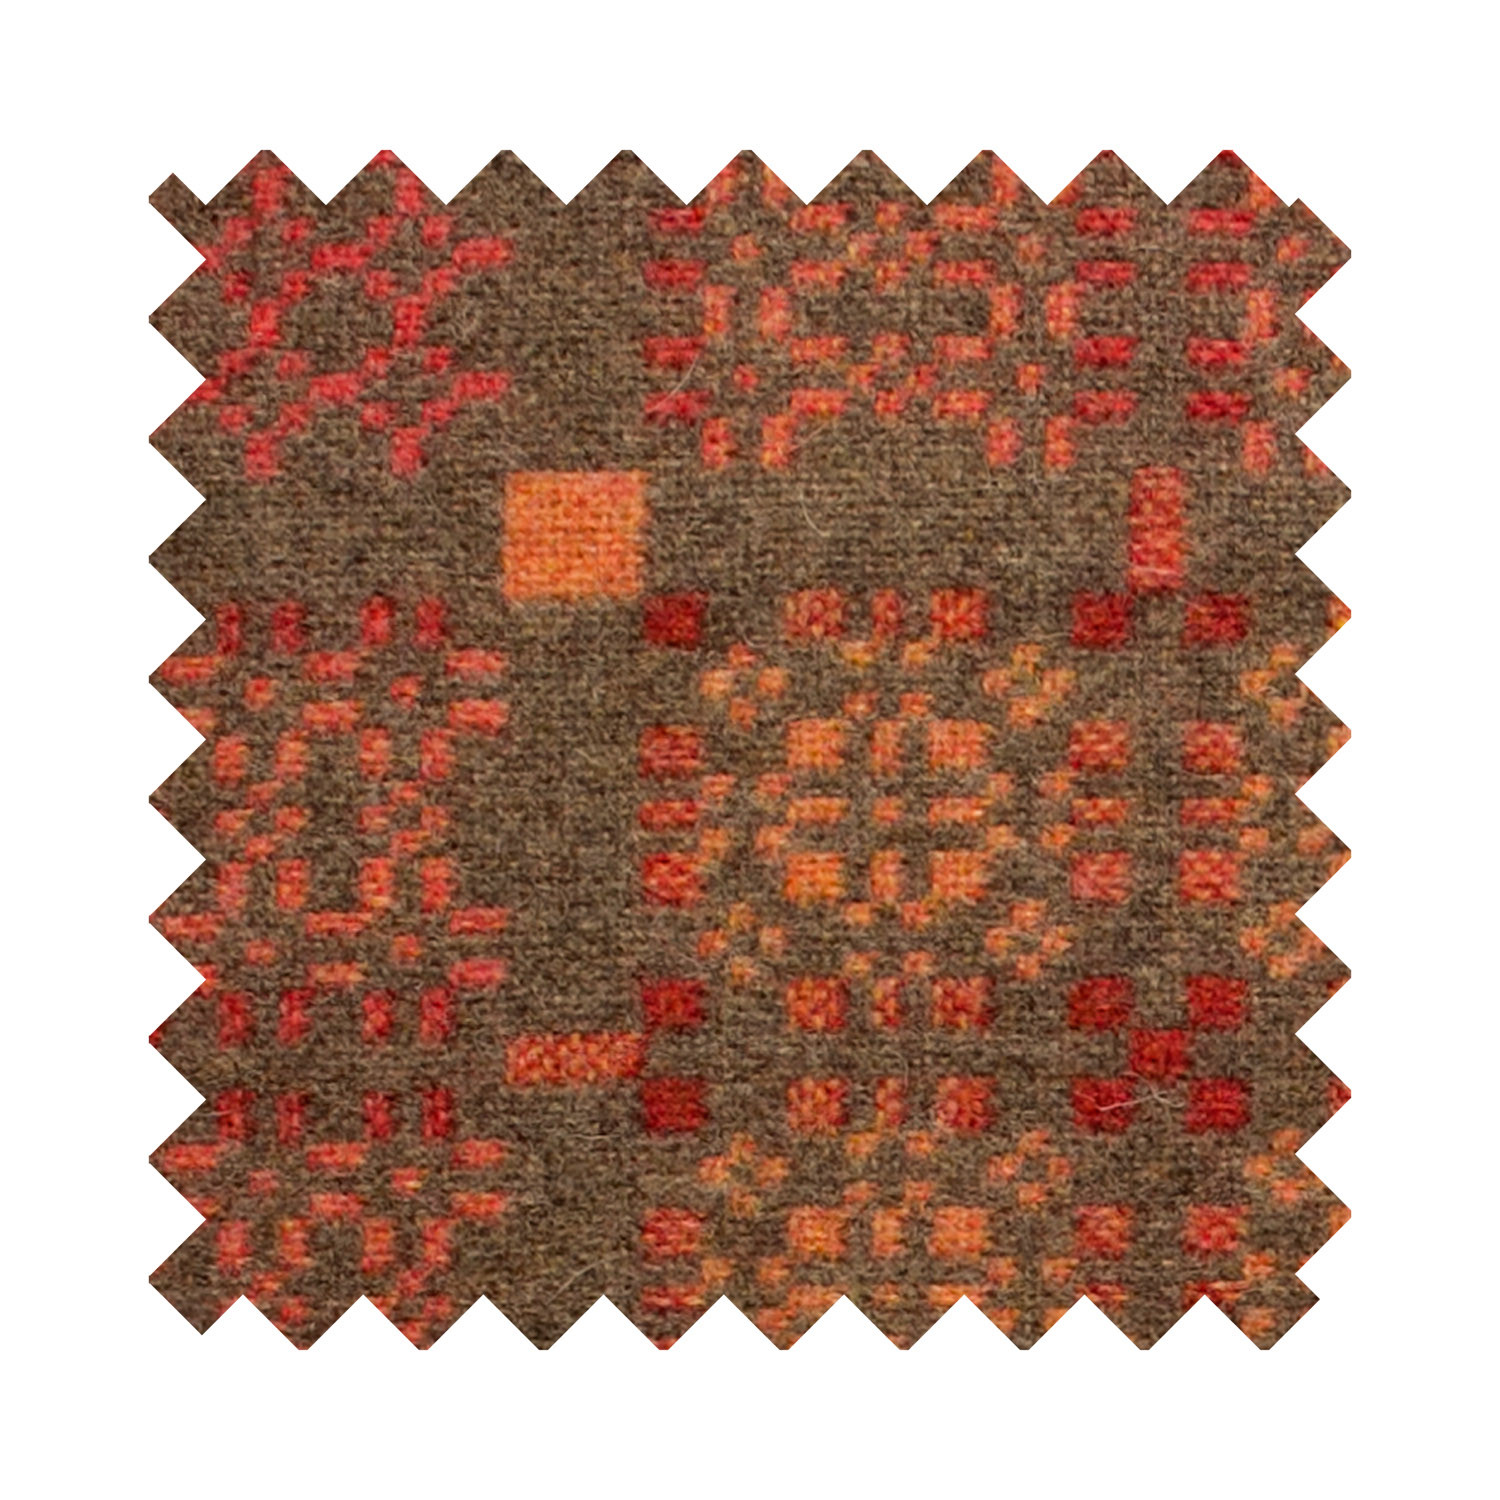 Knot Garden copper sample swatch